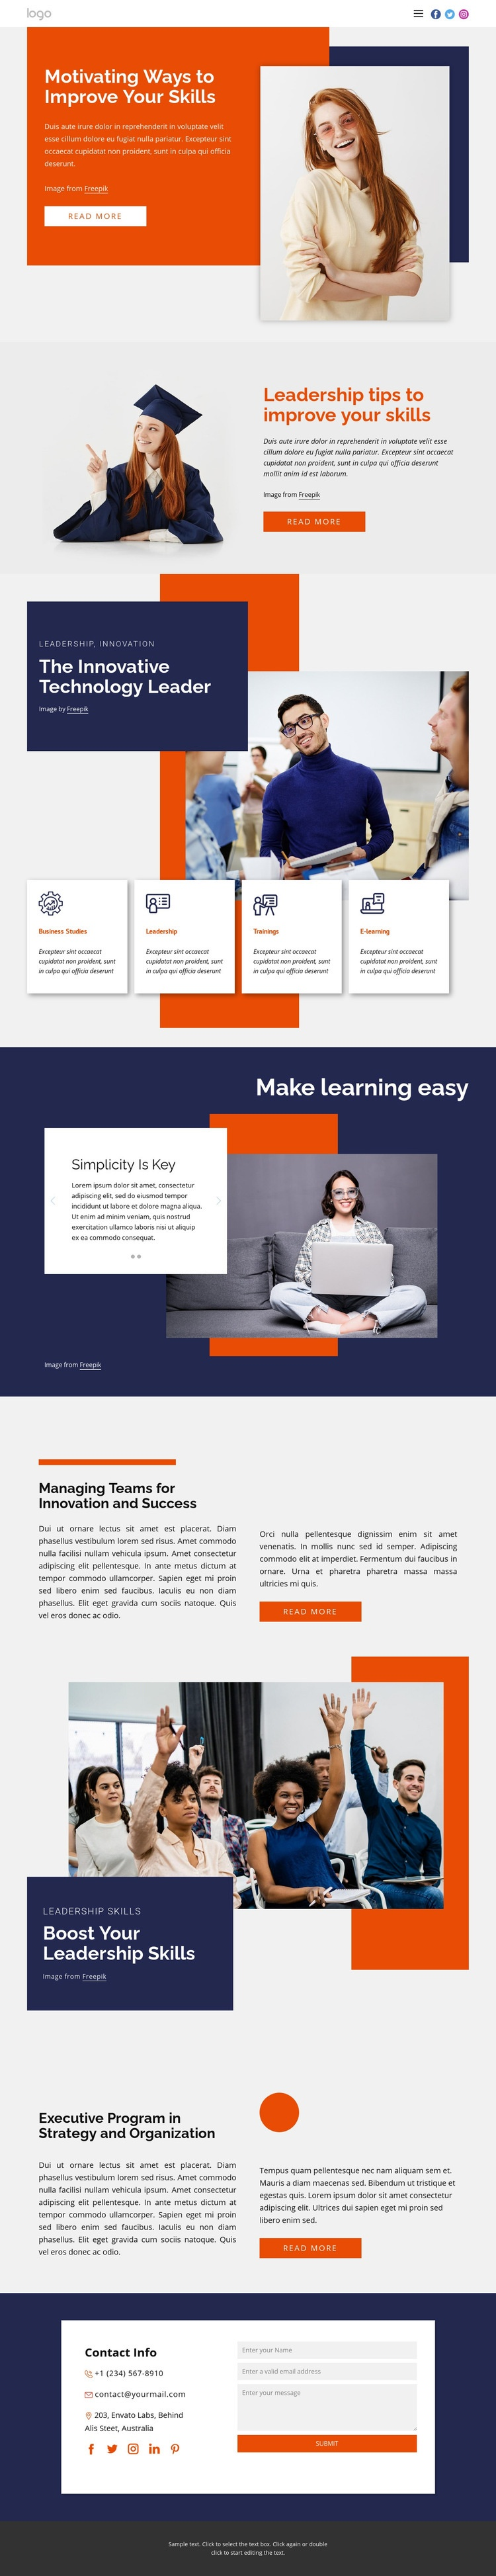 Drive your career forward Web Page Design